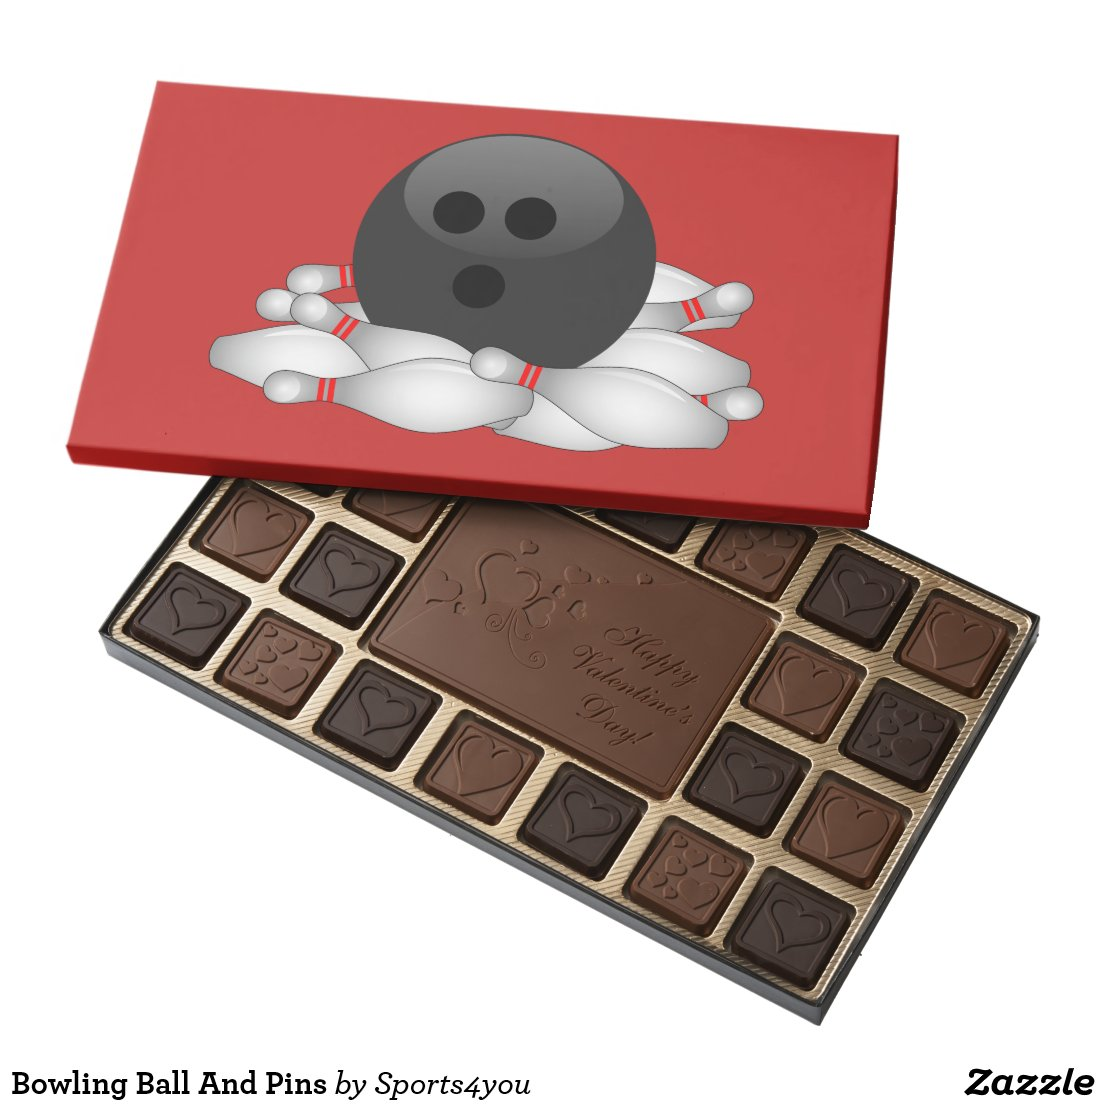 Bowling Ball And Pins Assorted Chocolates